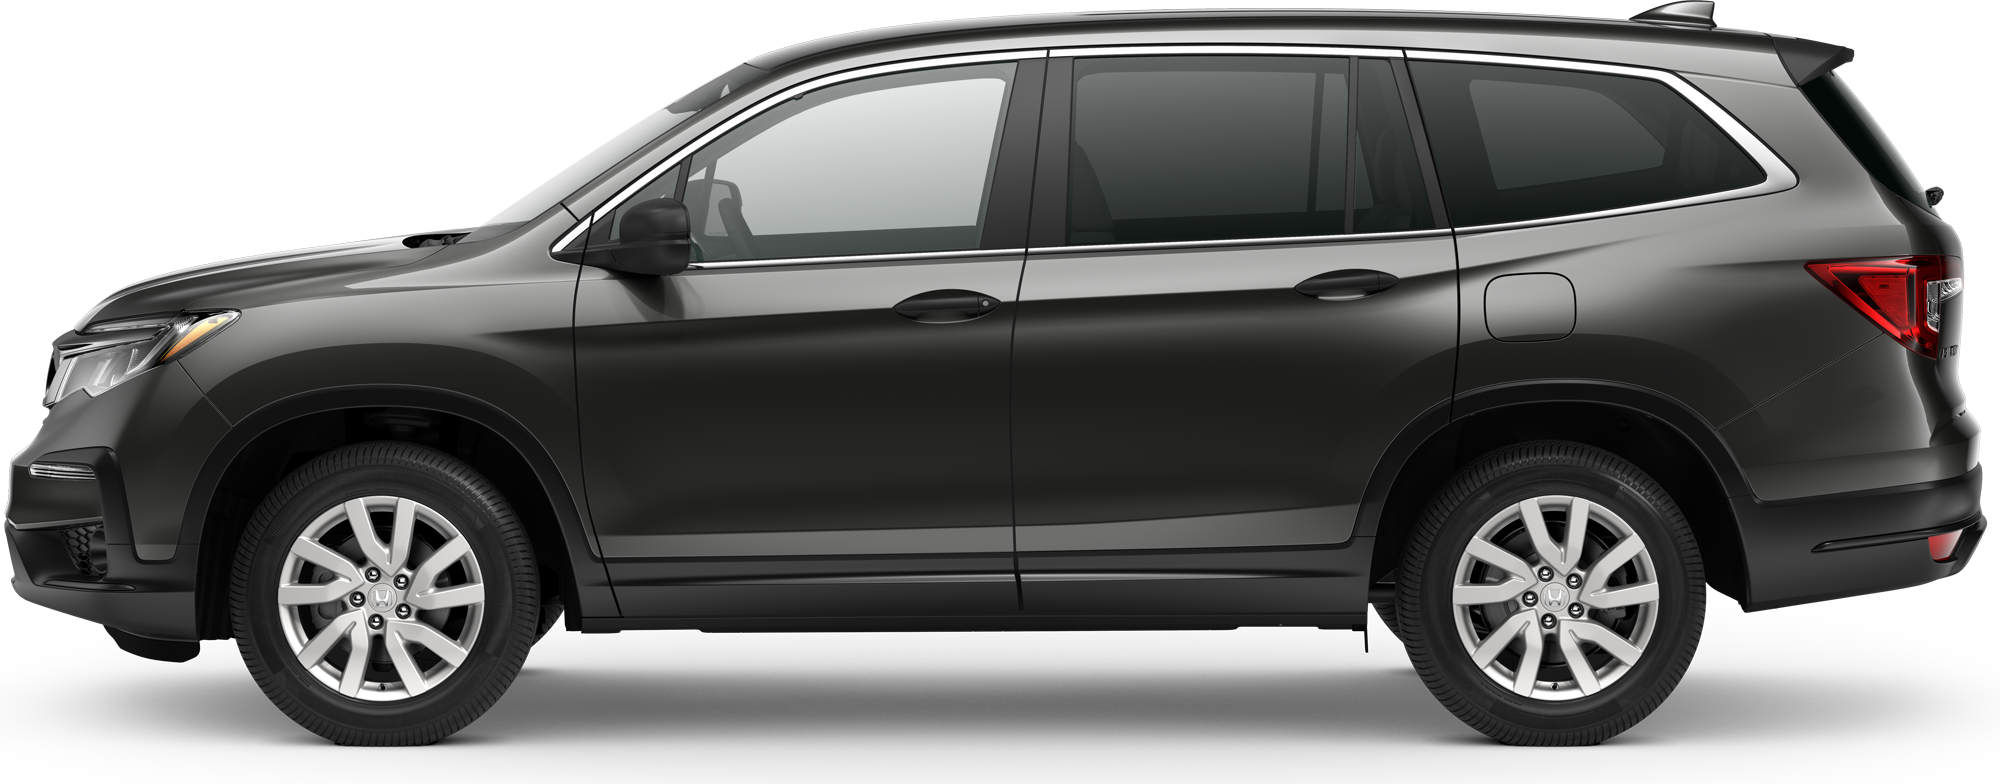 2021 Honda Pilot Lease Deal